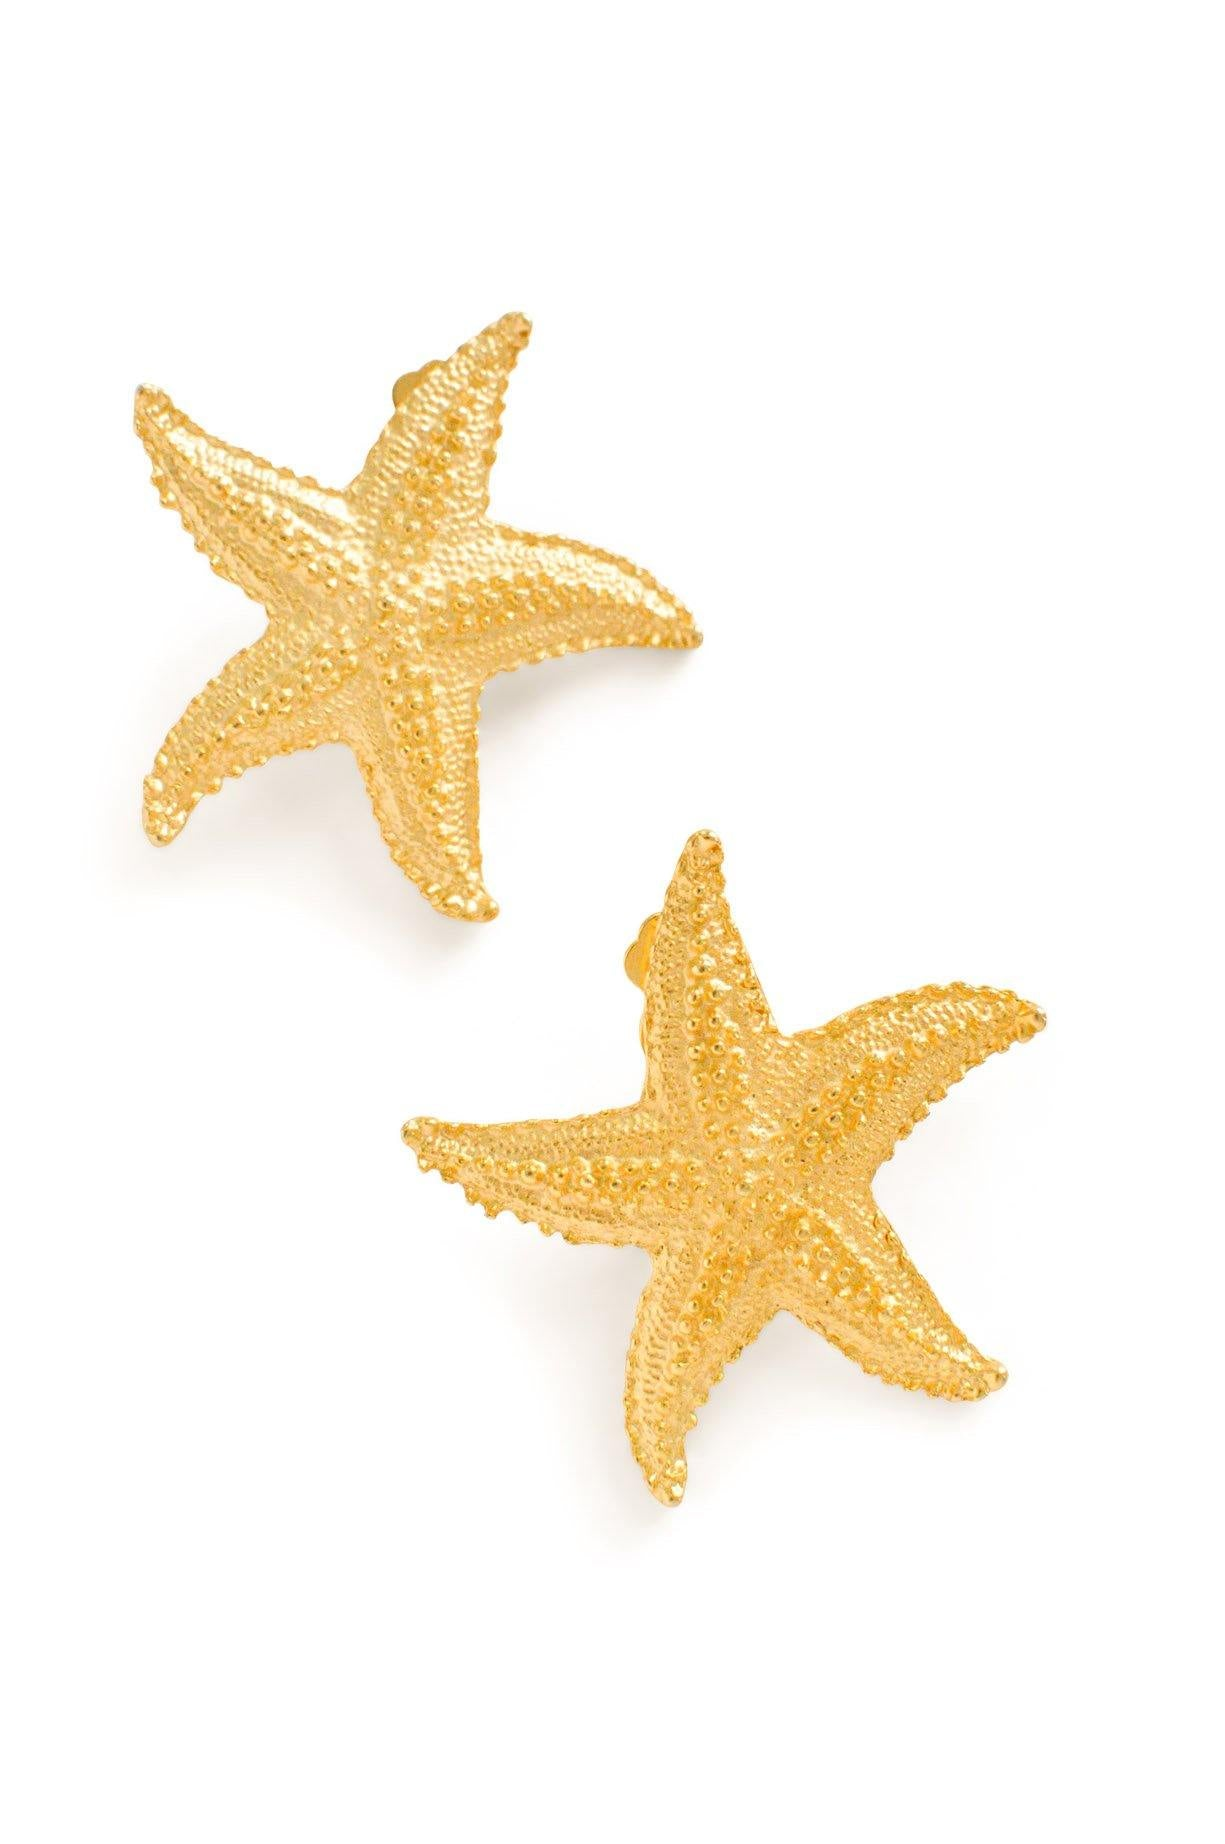 Statement Starfish Clip-on Earrings From Sweet & Spark